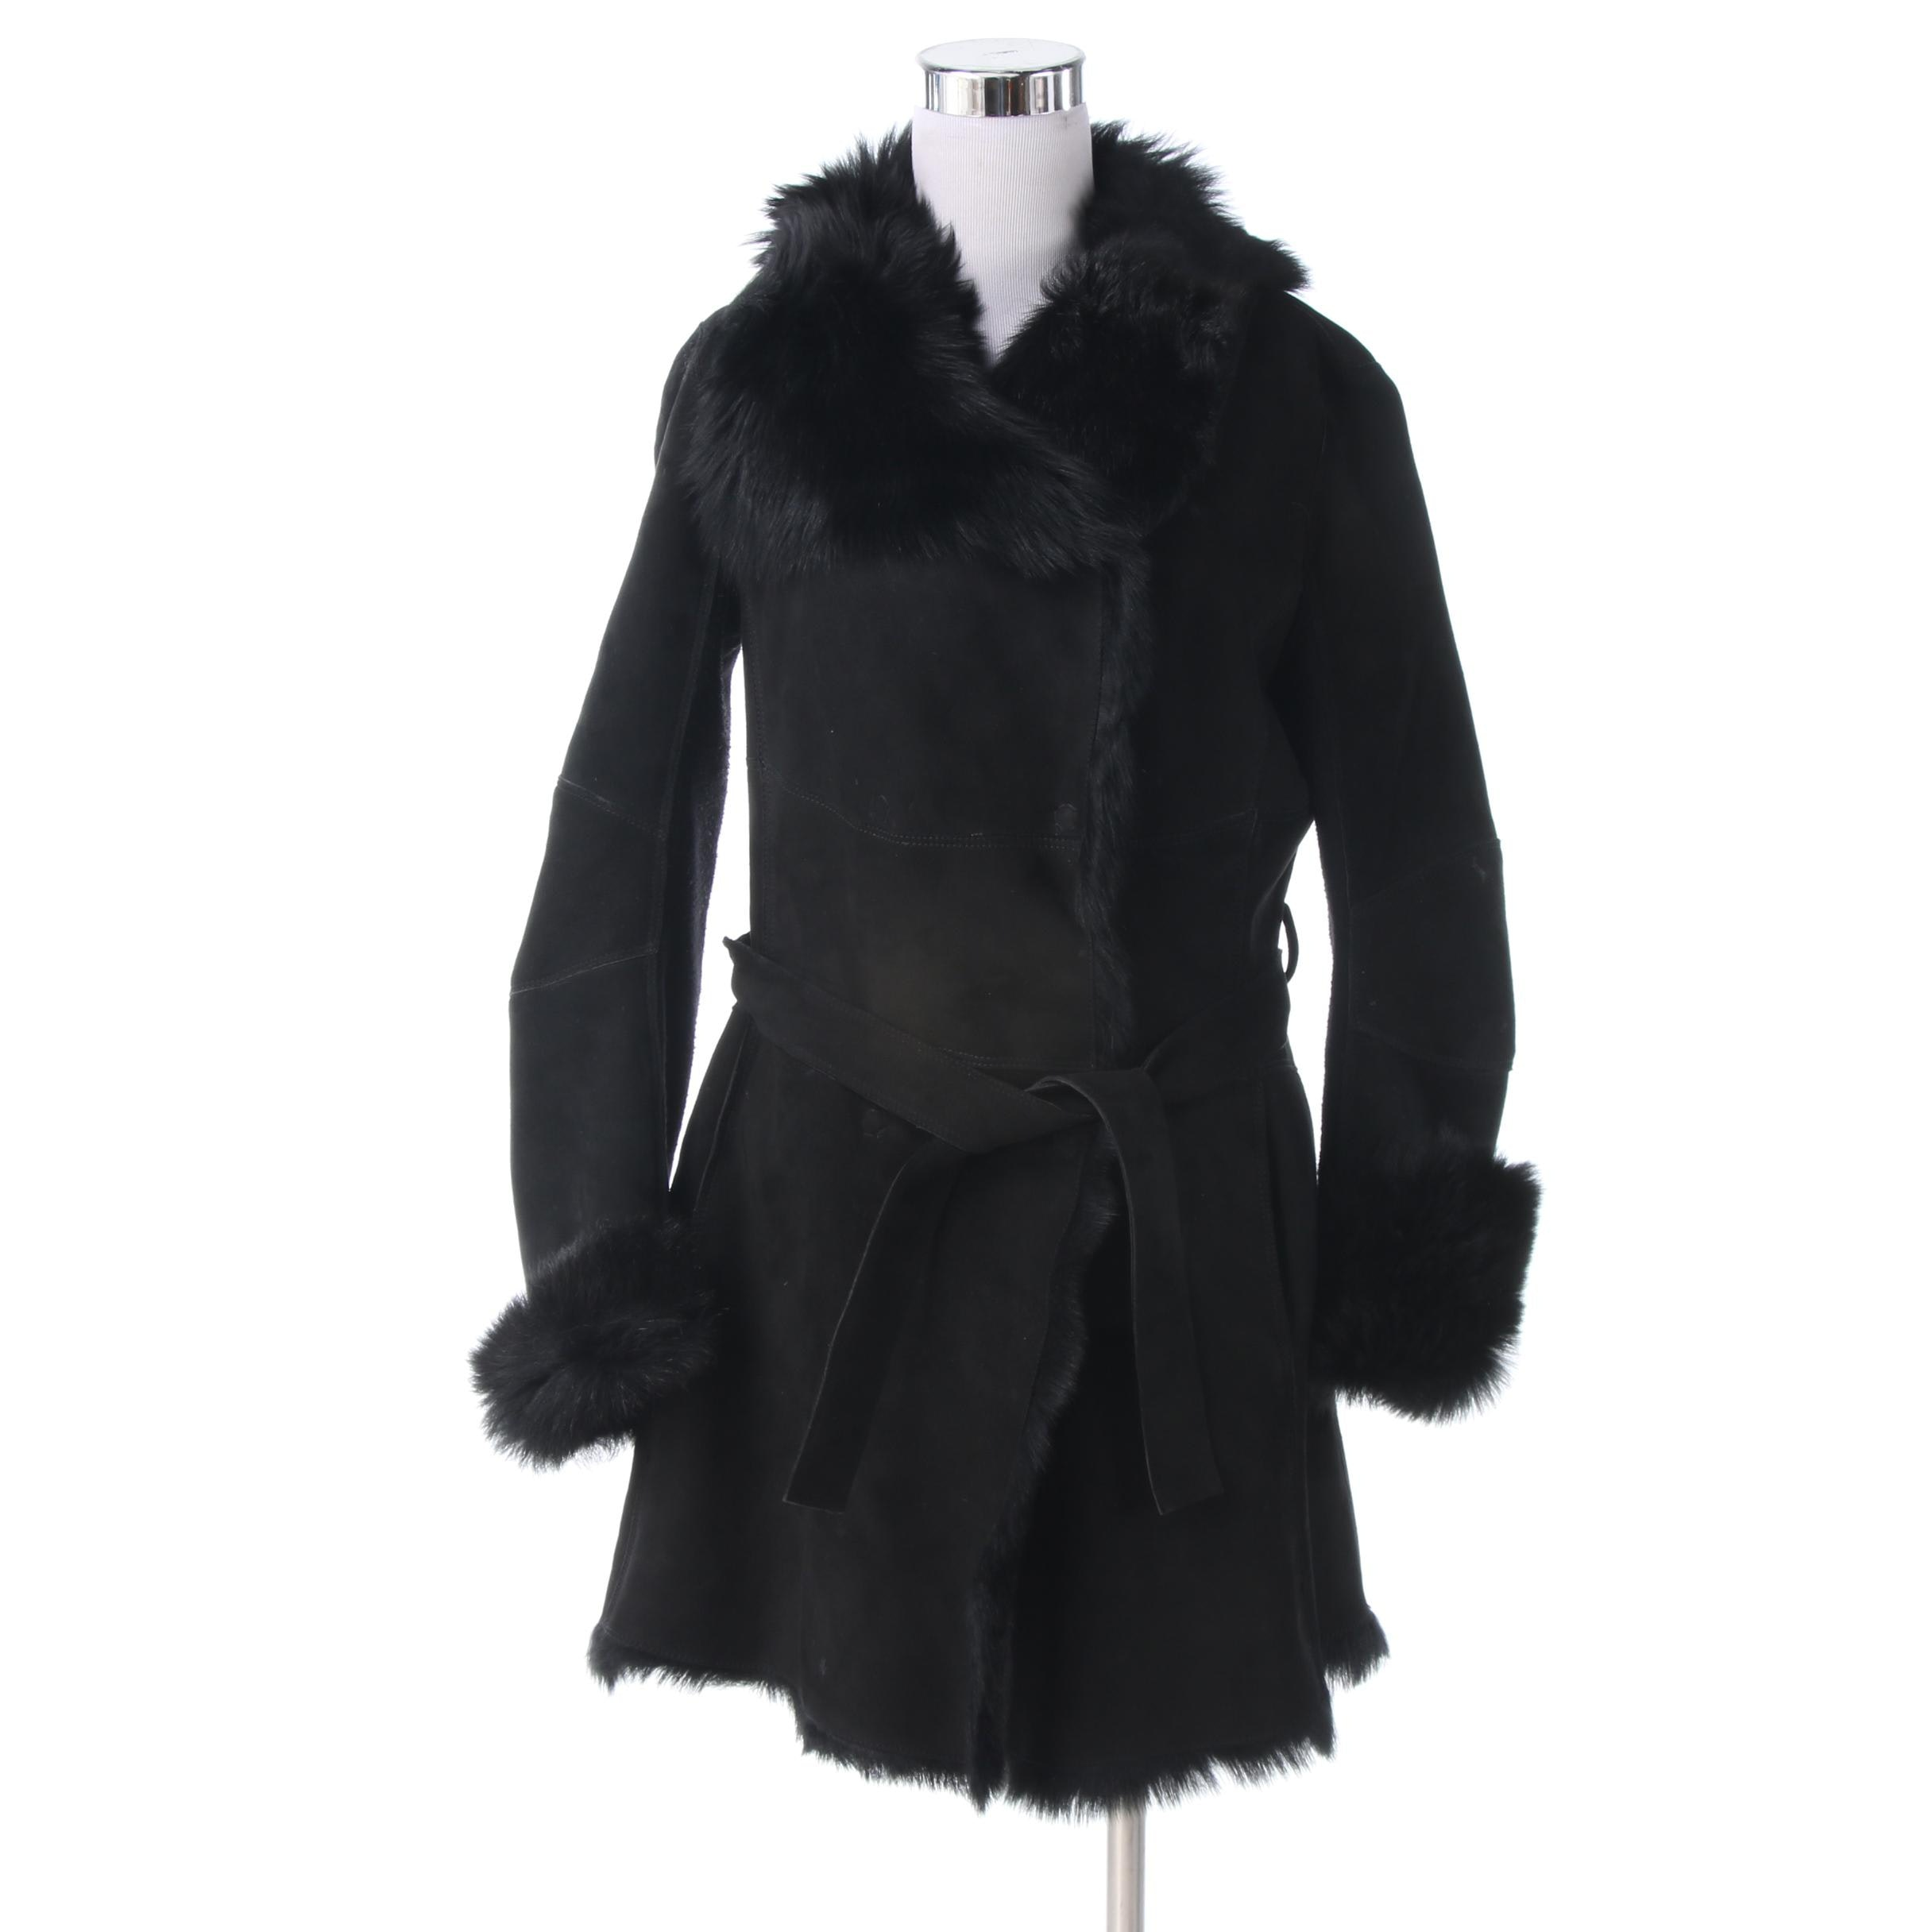 Vici Corsi Couture Black Goatskin Coat with Goat Fur Lining